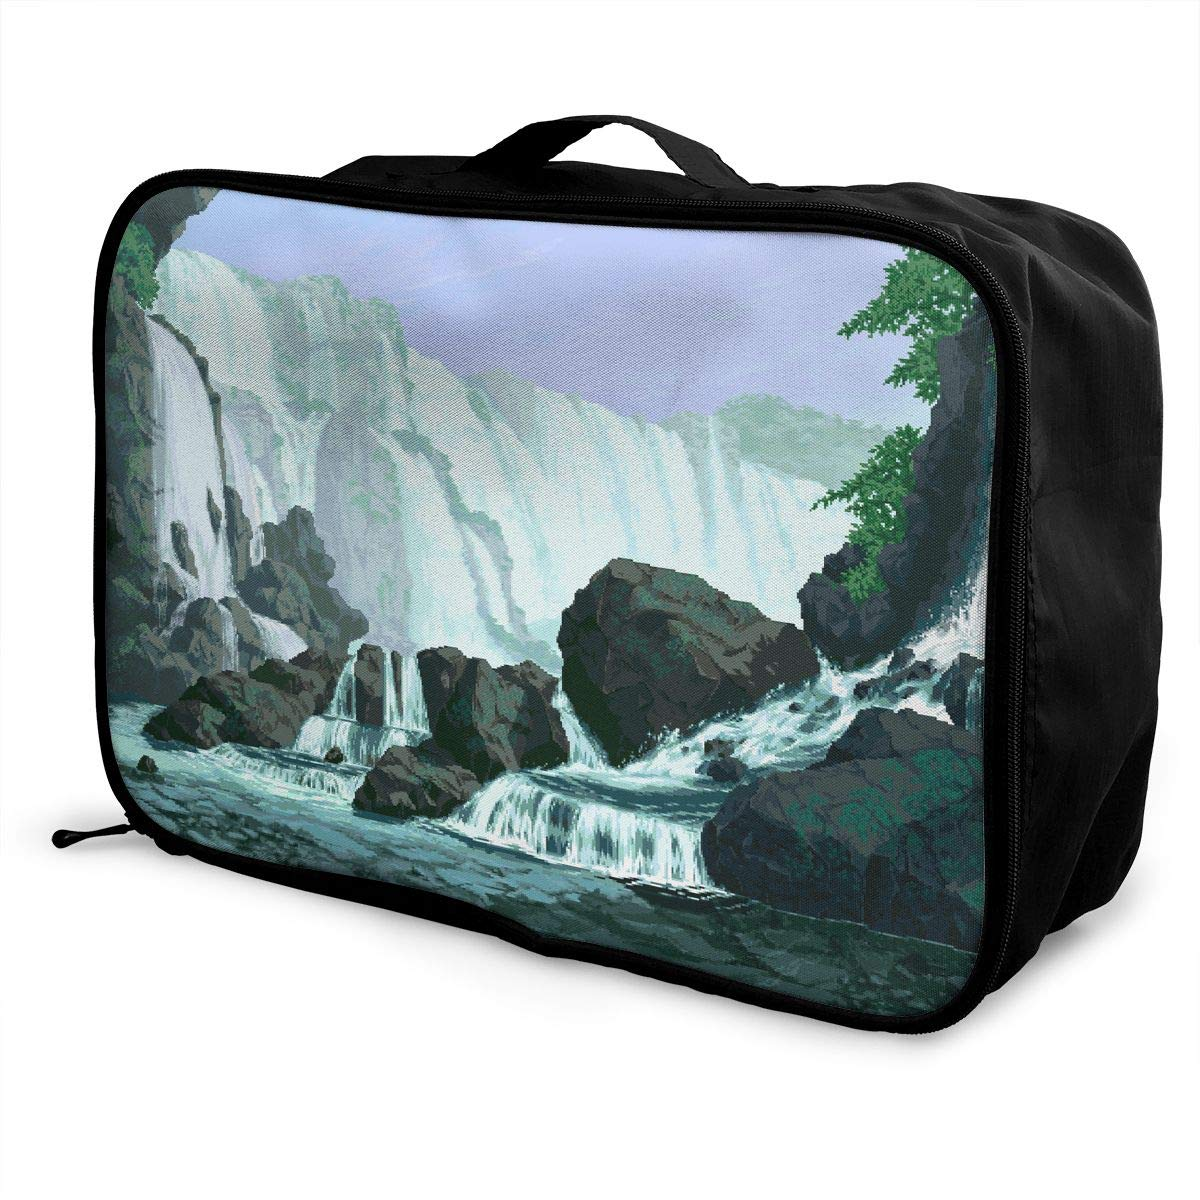 Travel Luggage Duffle Bag Lightweight Portable Handbag Waterfall Print Large Capacity Waterproof Foldable Storage Tote